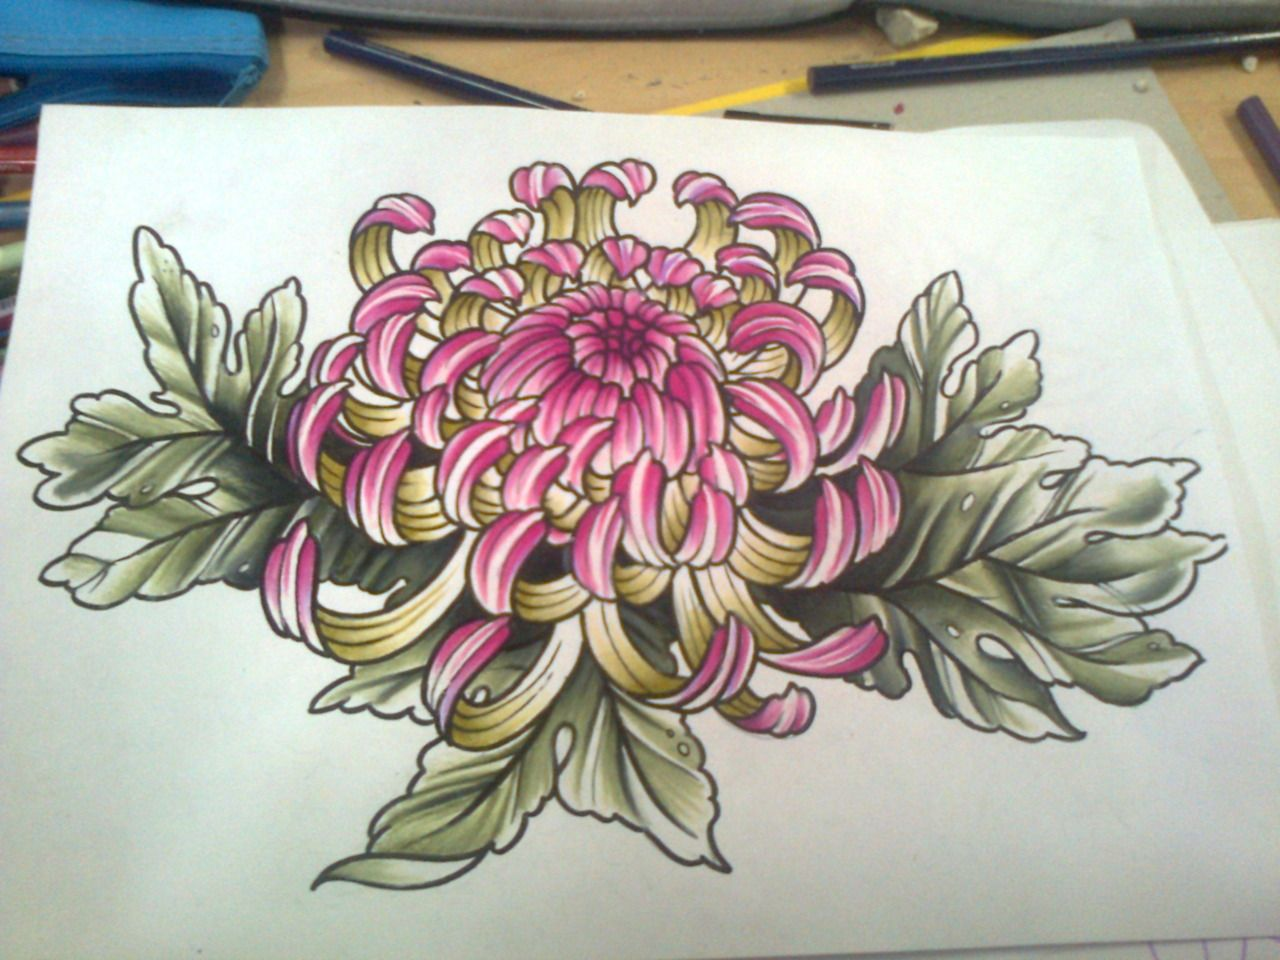 japan chrysanthemum design - Google Search | Chrysanthemum ...